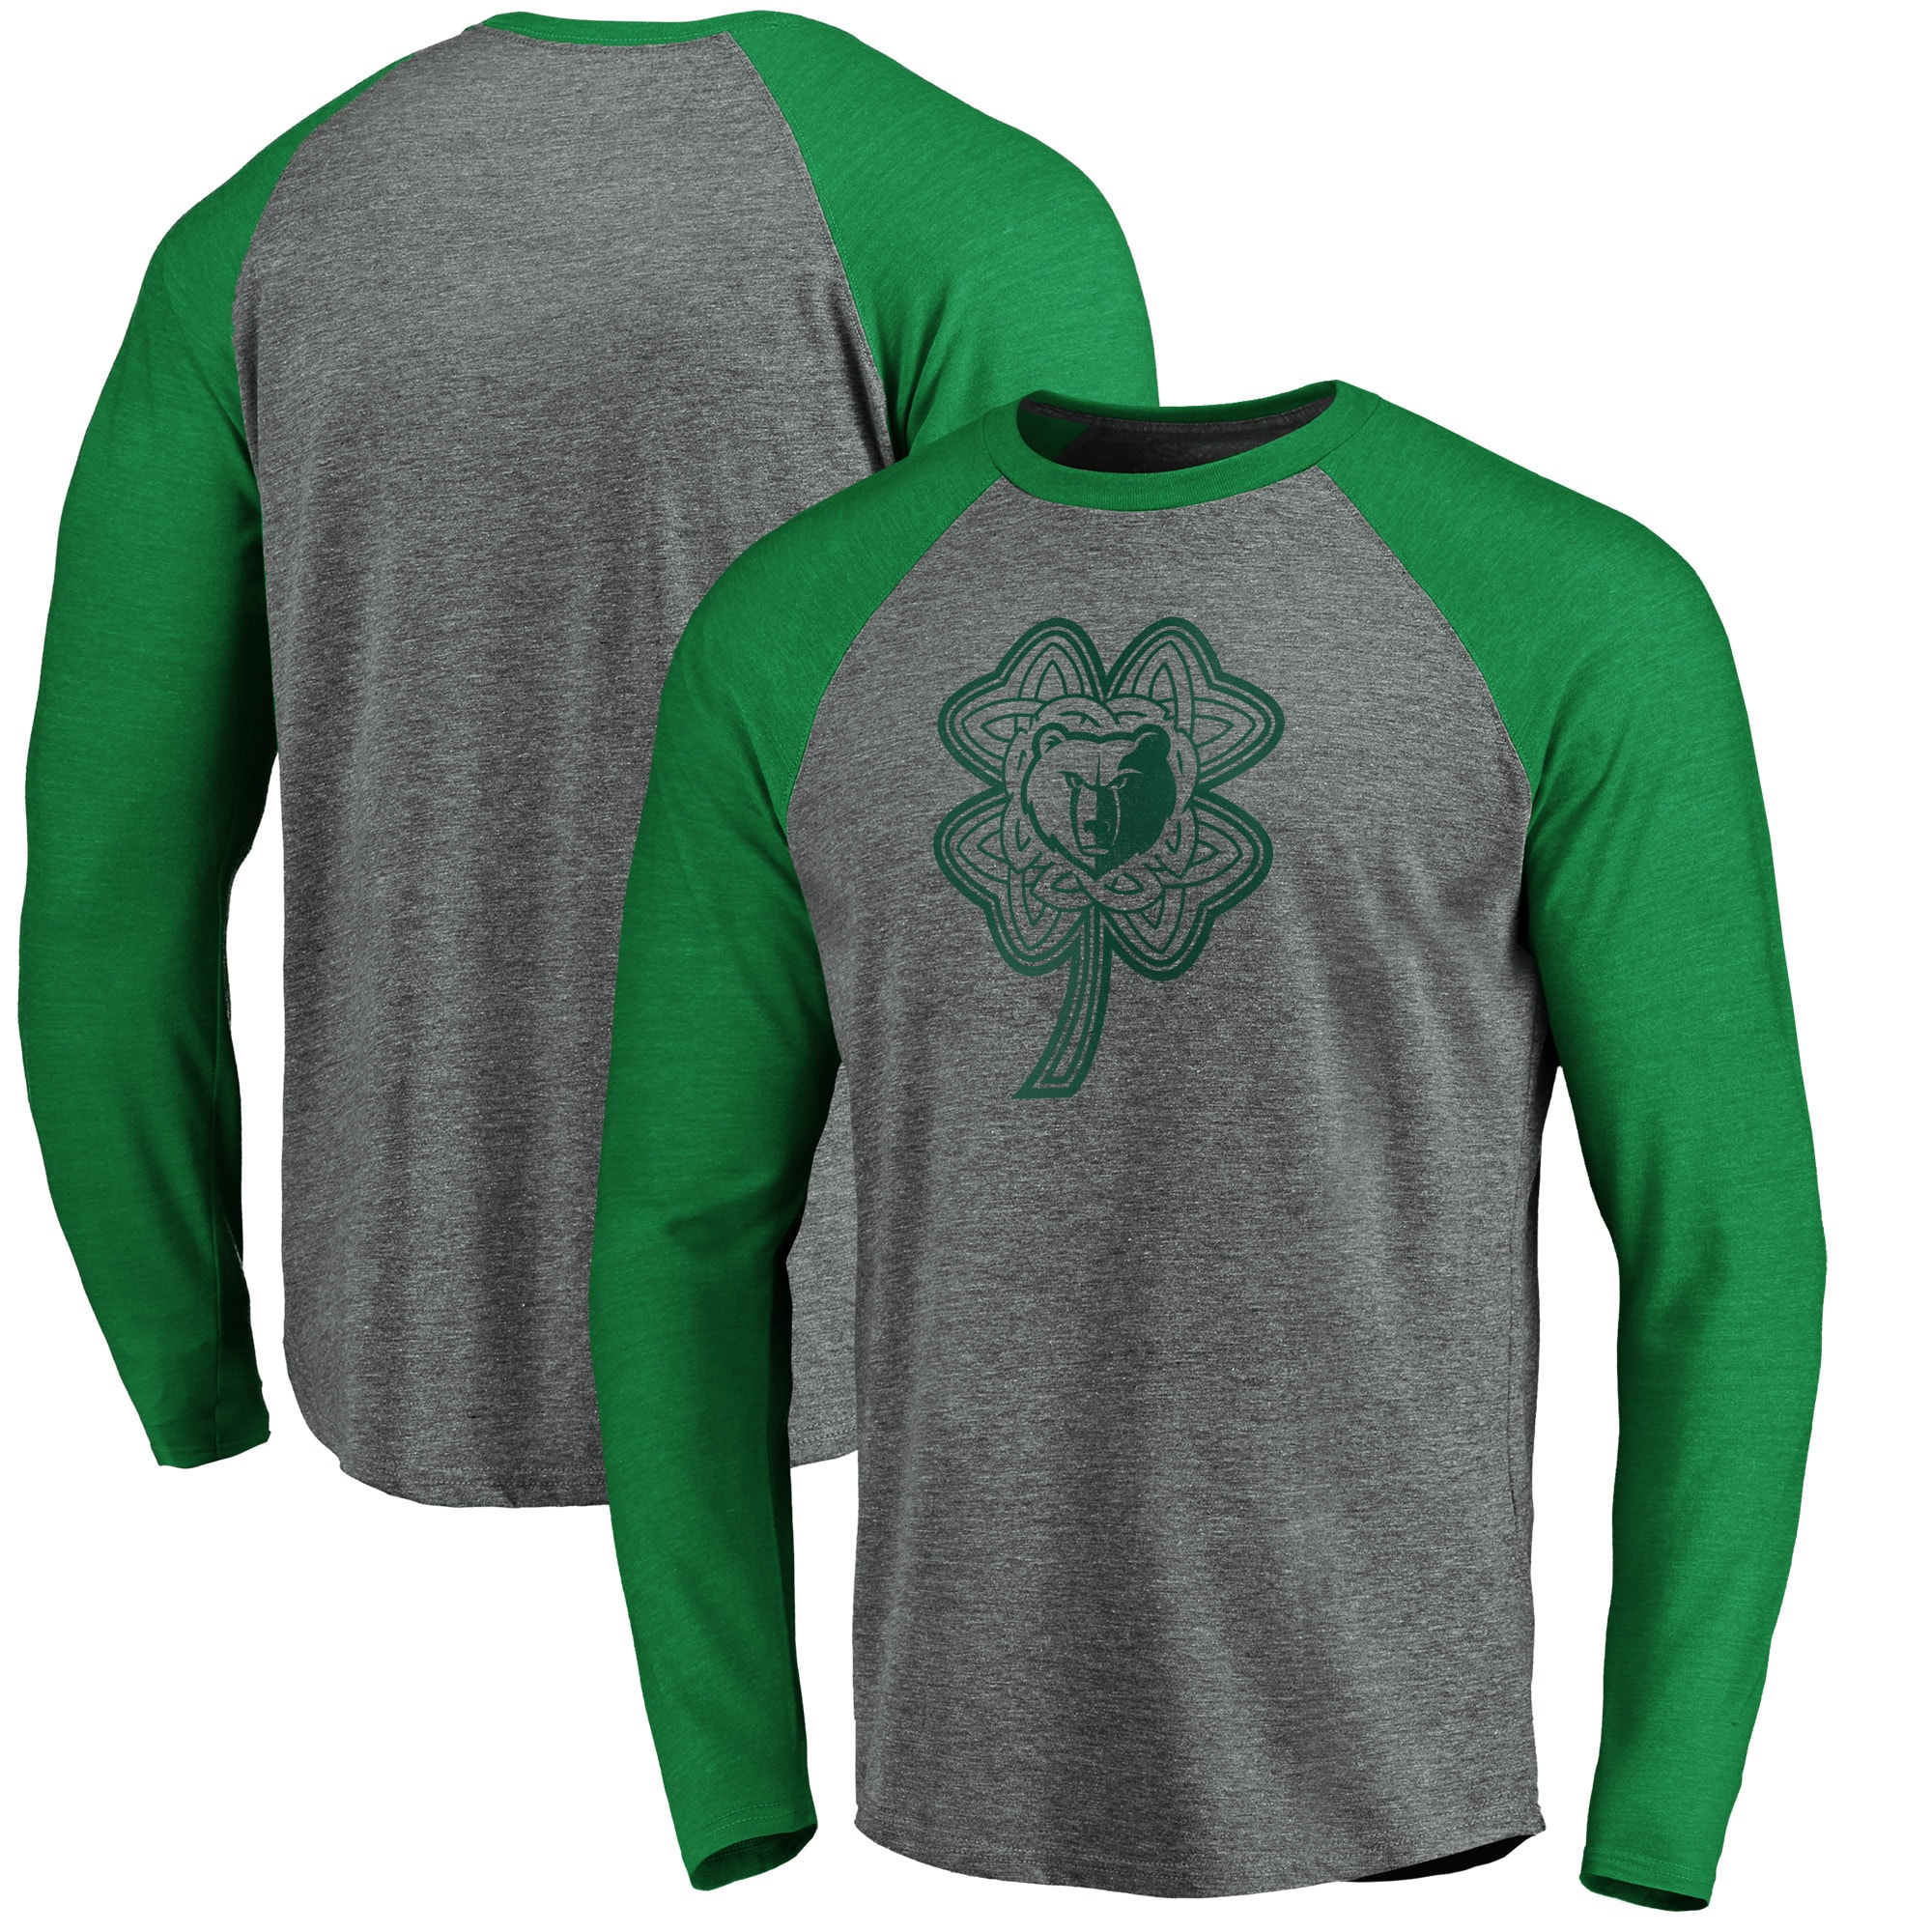 Memphis Grizzlies Fanatics Branded St. Patrick's Day Celtic Charm Raglan Tri-Blend Long Sleeve T-Shirt - Heathered Gray